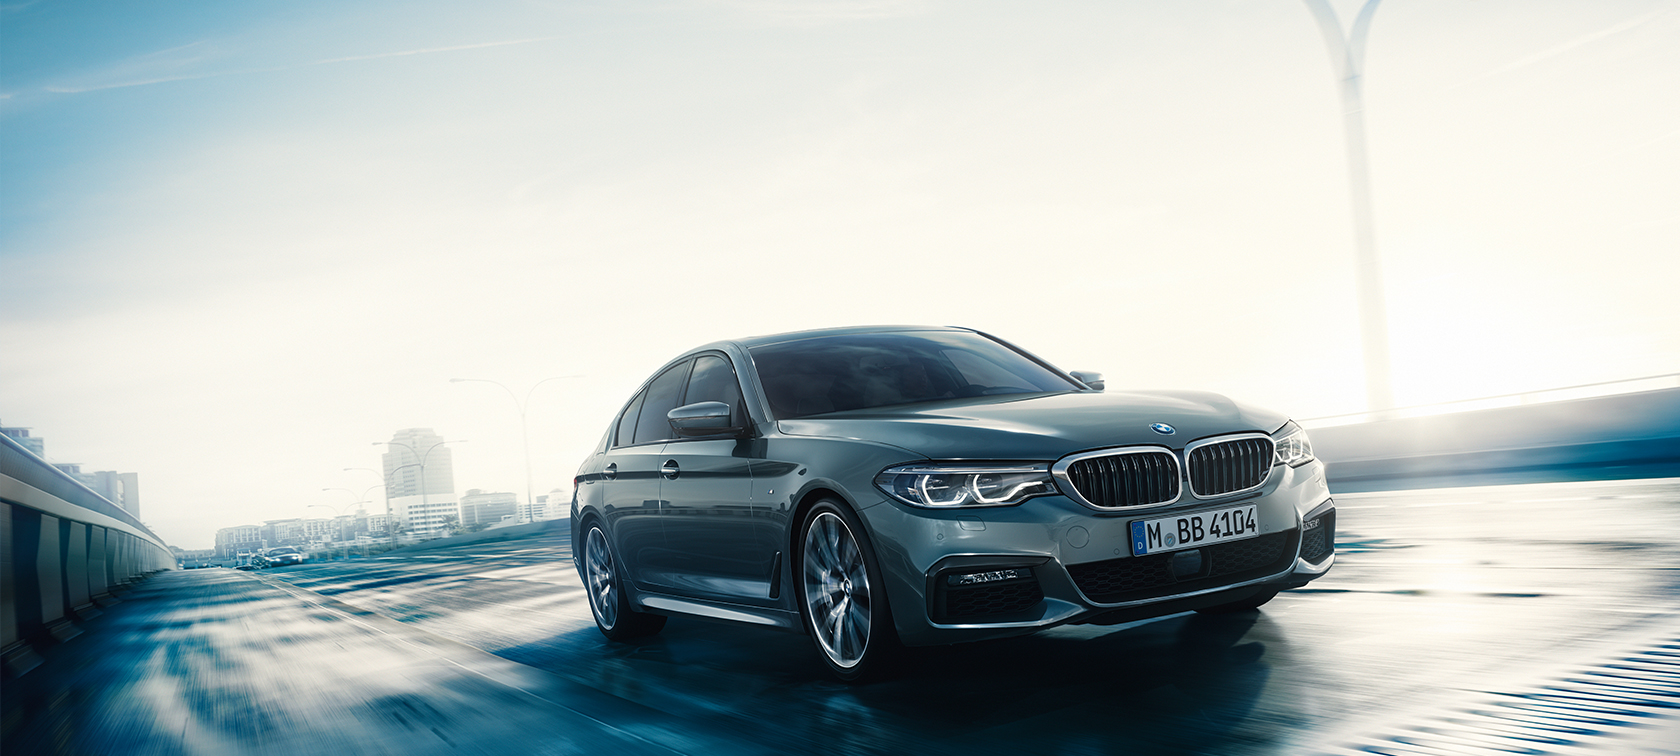 Front view of driving BMW 5 Series Sedan by day under glass building.